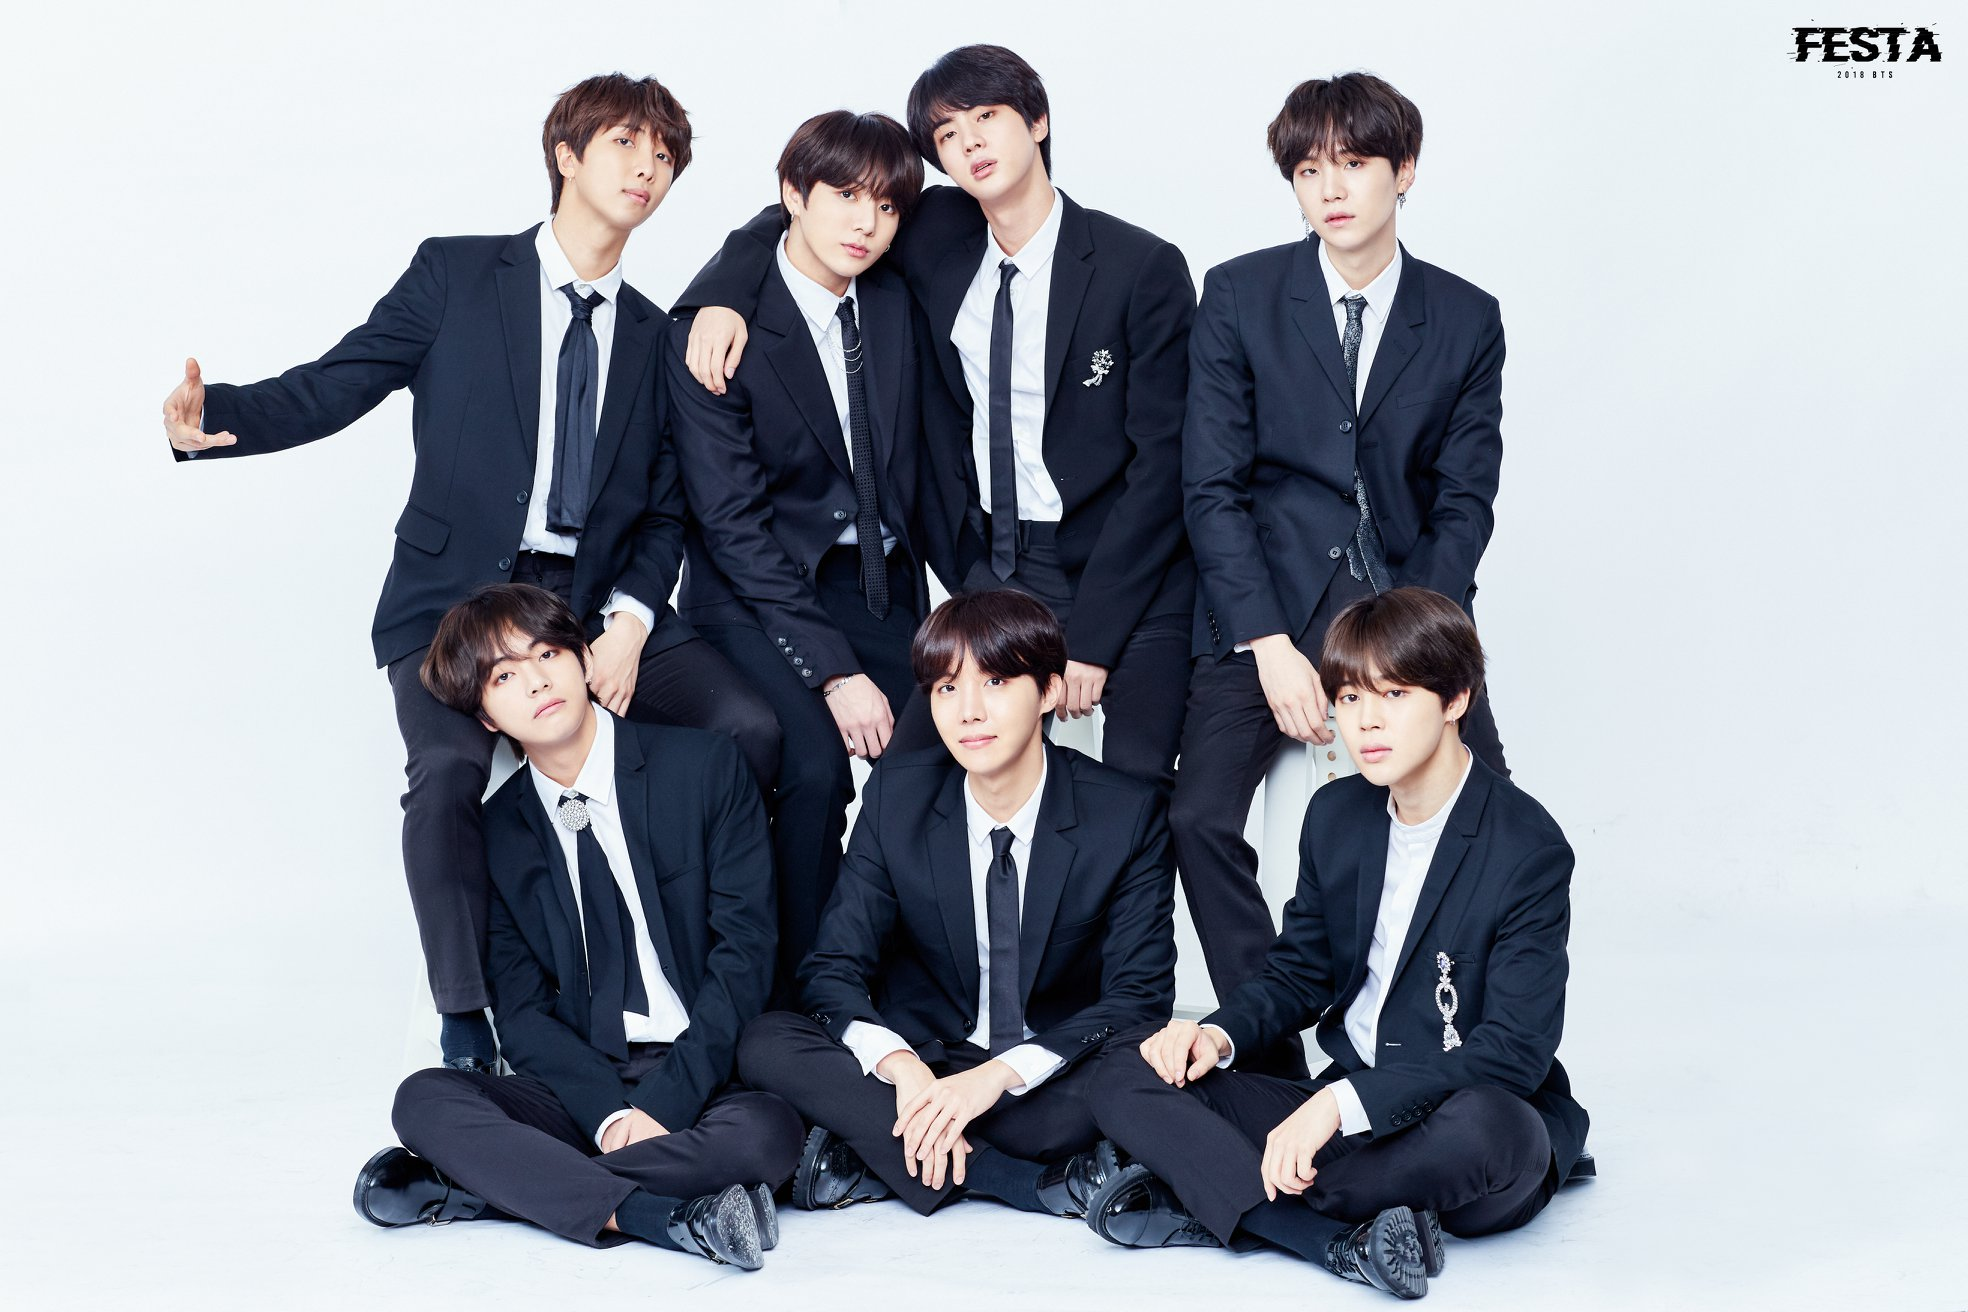 Bts Images 2018 Bts Festa 2018 Bts Family Photograph 1 2 Hd